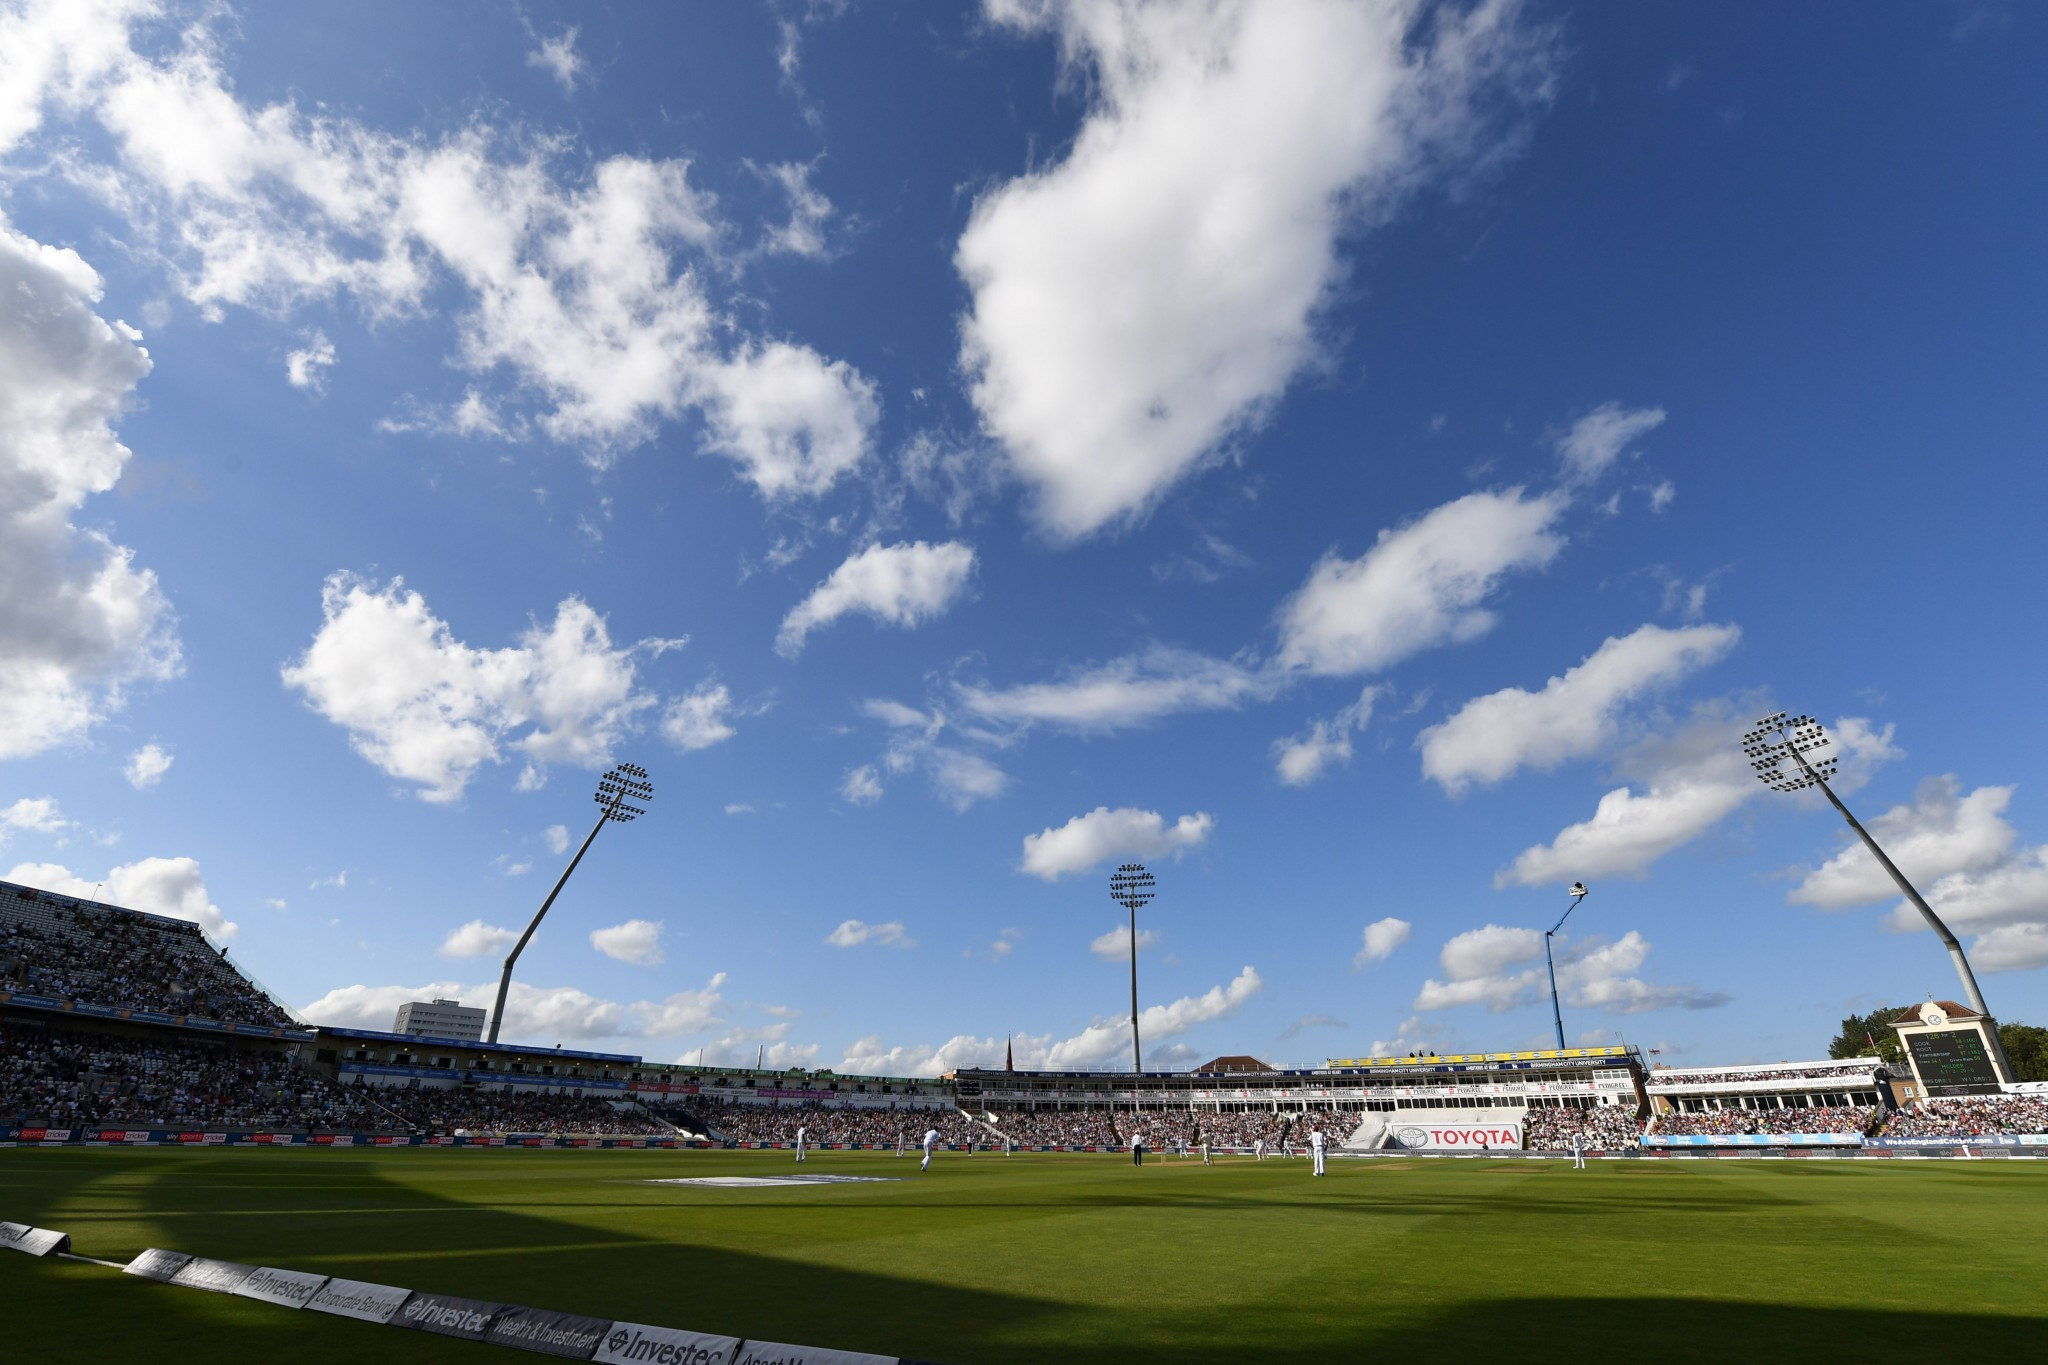 Cricket set to be left out of Birmingham's 2022 Commonwealth Games bid